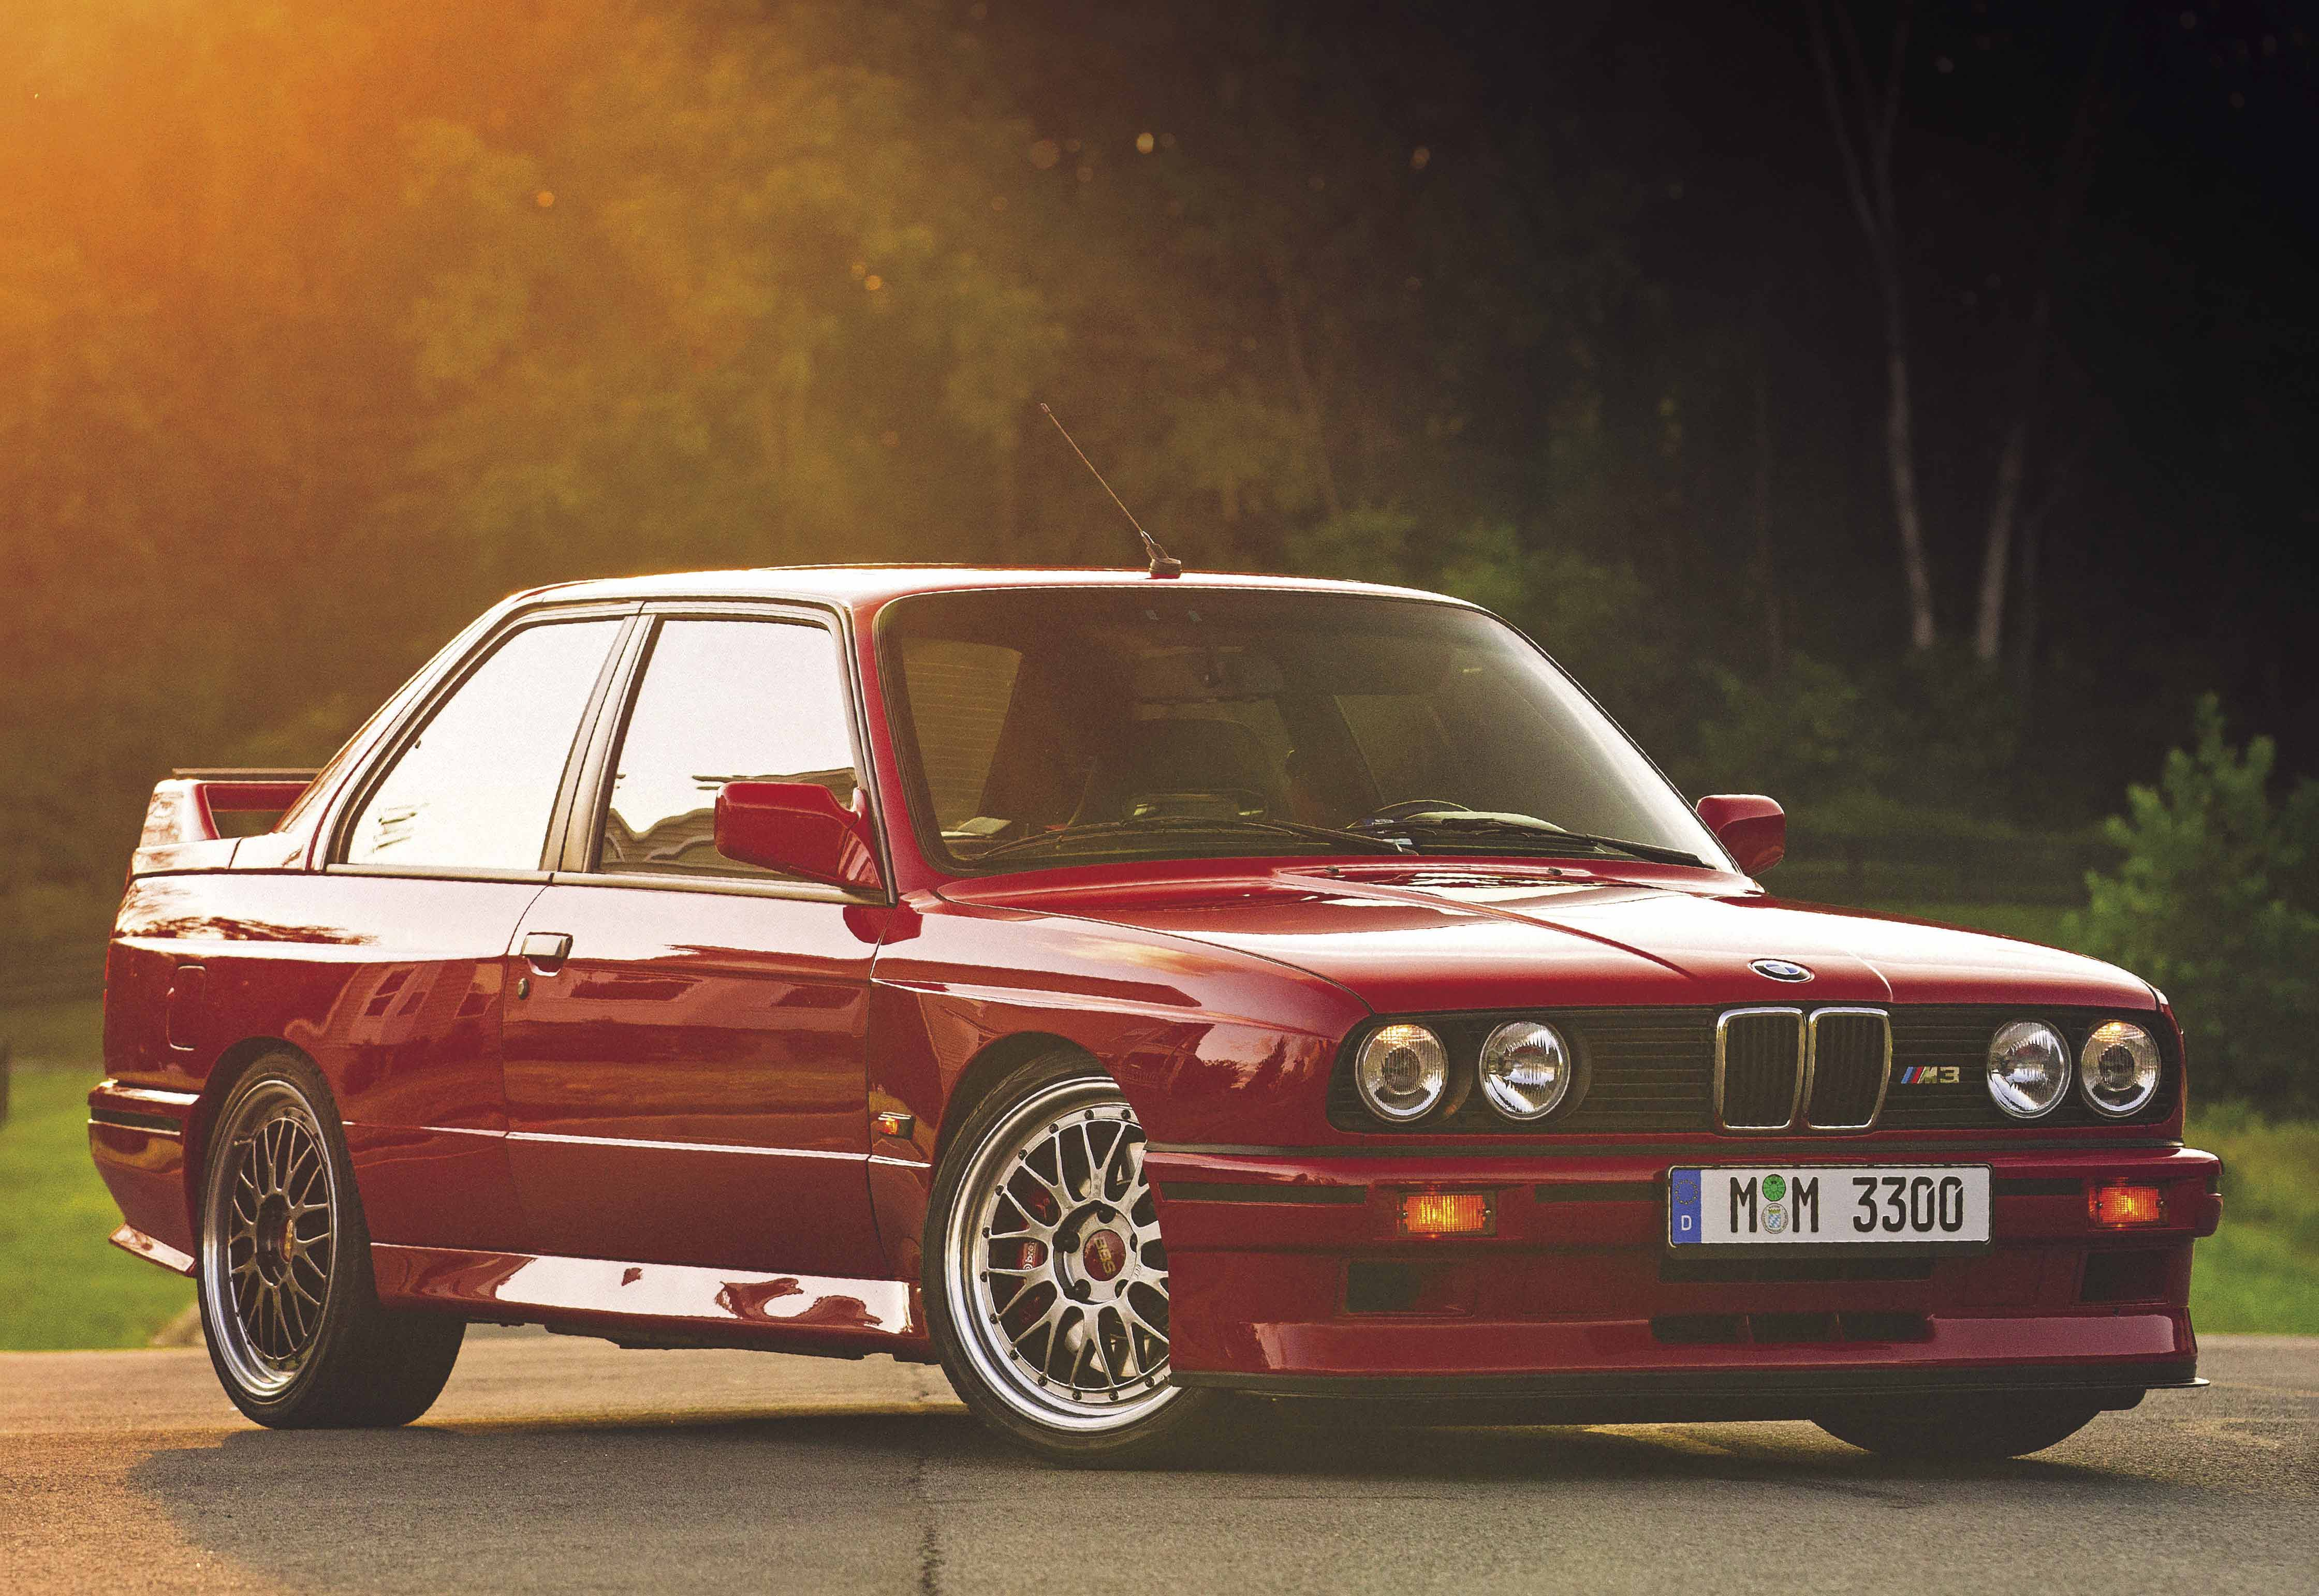 Bmw M3 E30 >> 240whp S14 Engined 2 5 Litre Bmw M3 E30 Drive My Blogs Drive